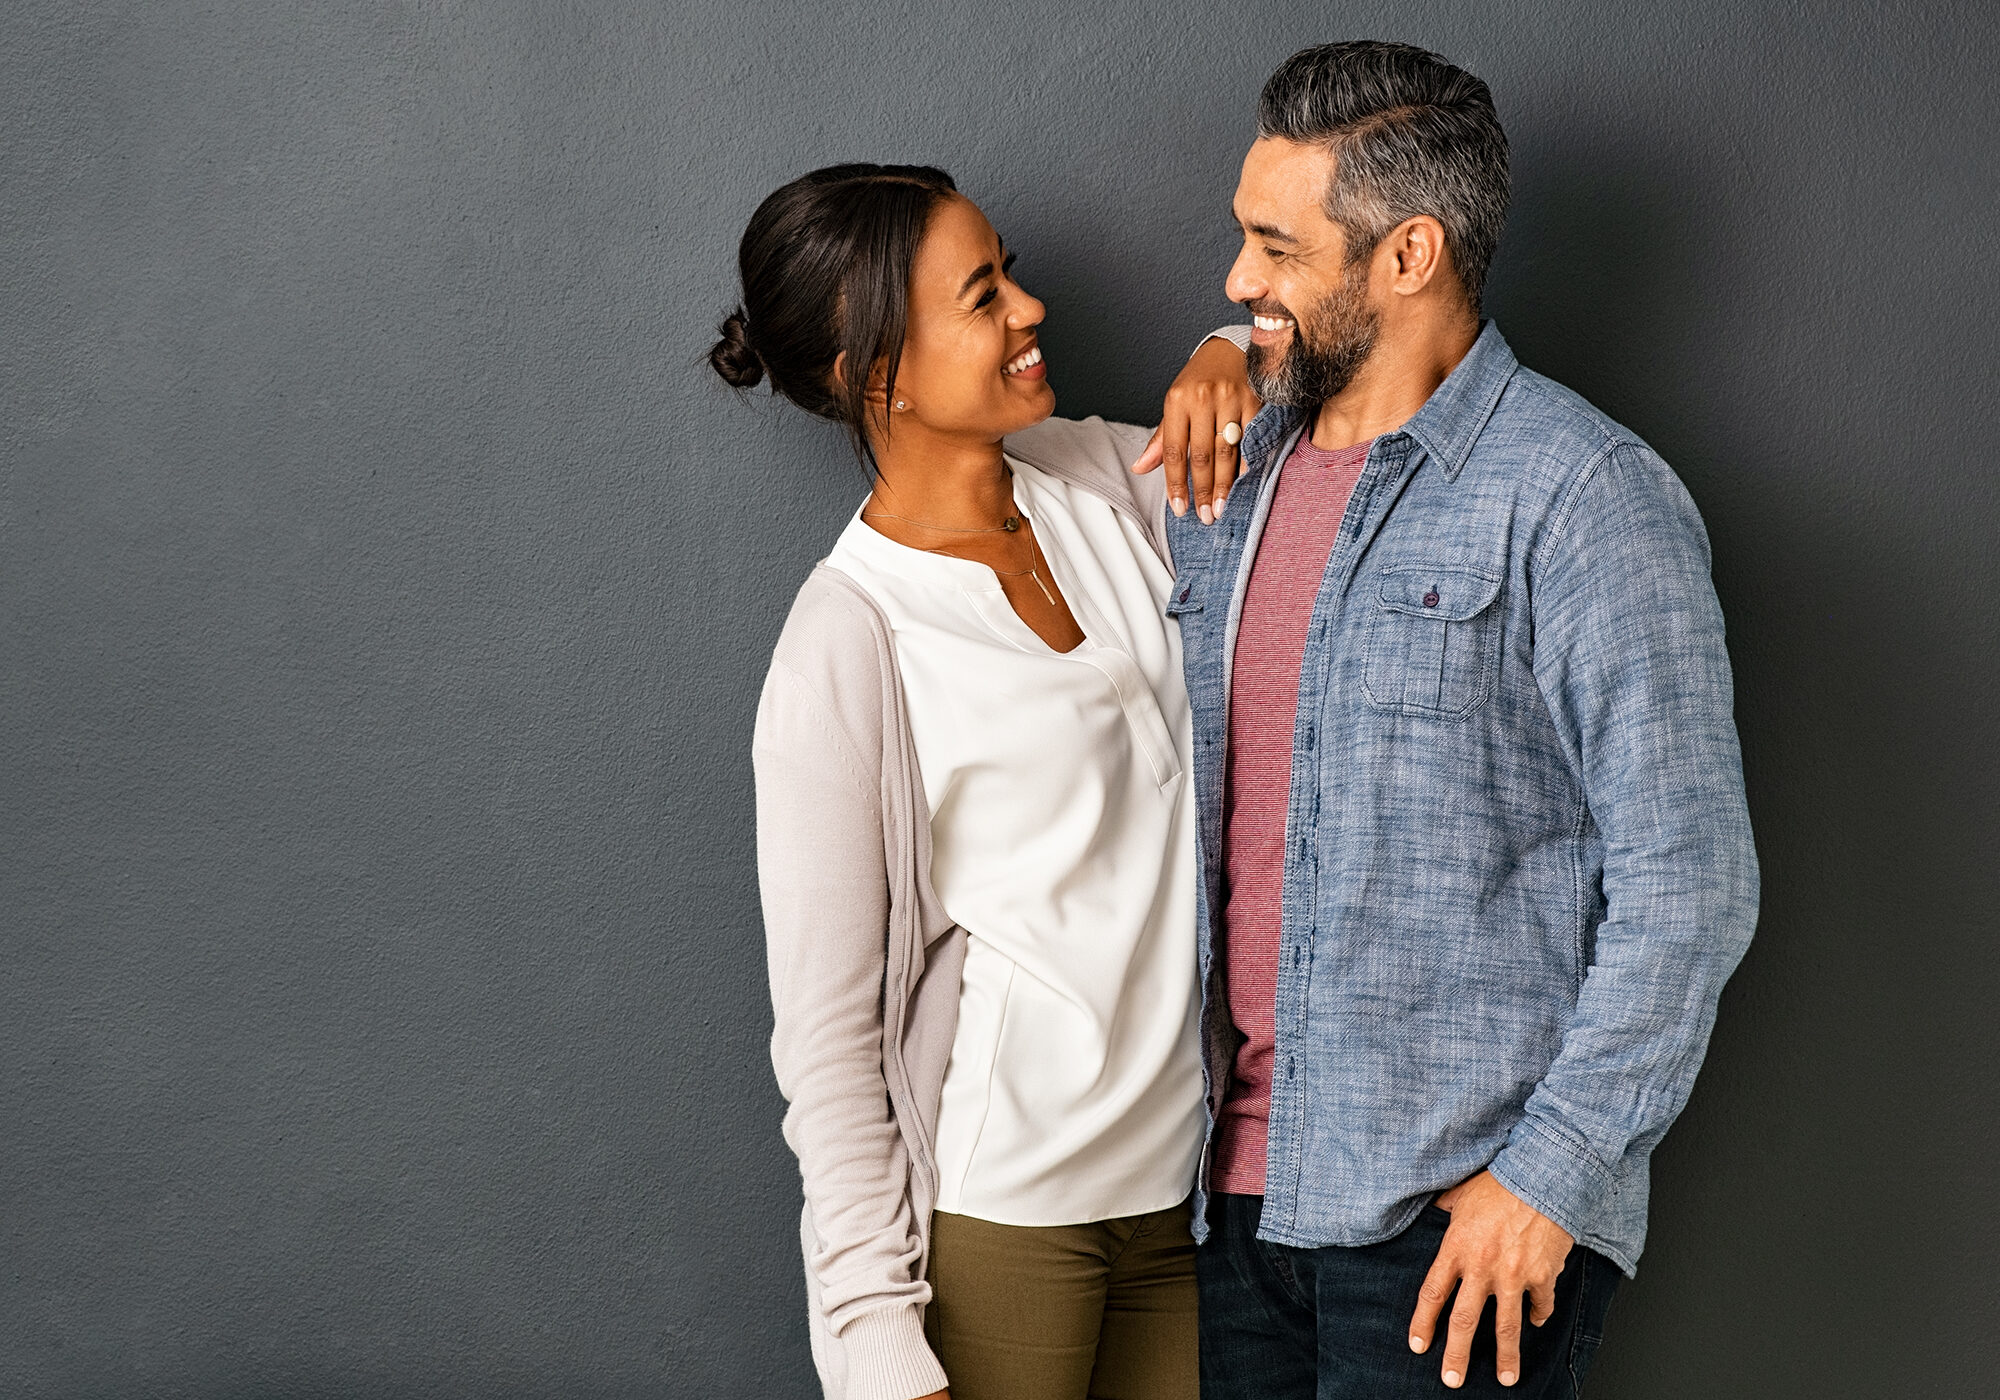 multiethnic-couple-looking-at-each-other-with-a-sm-Y4BC83A